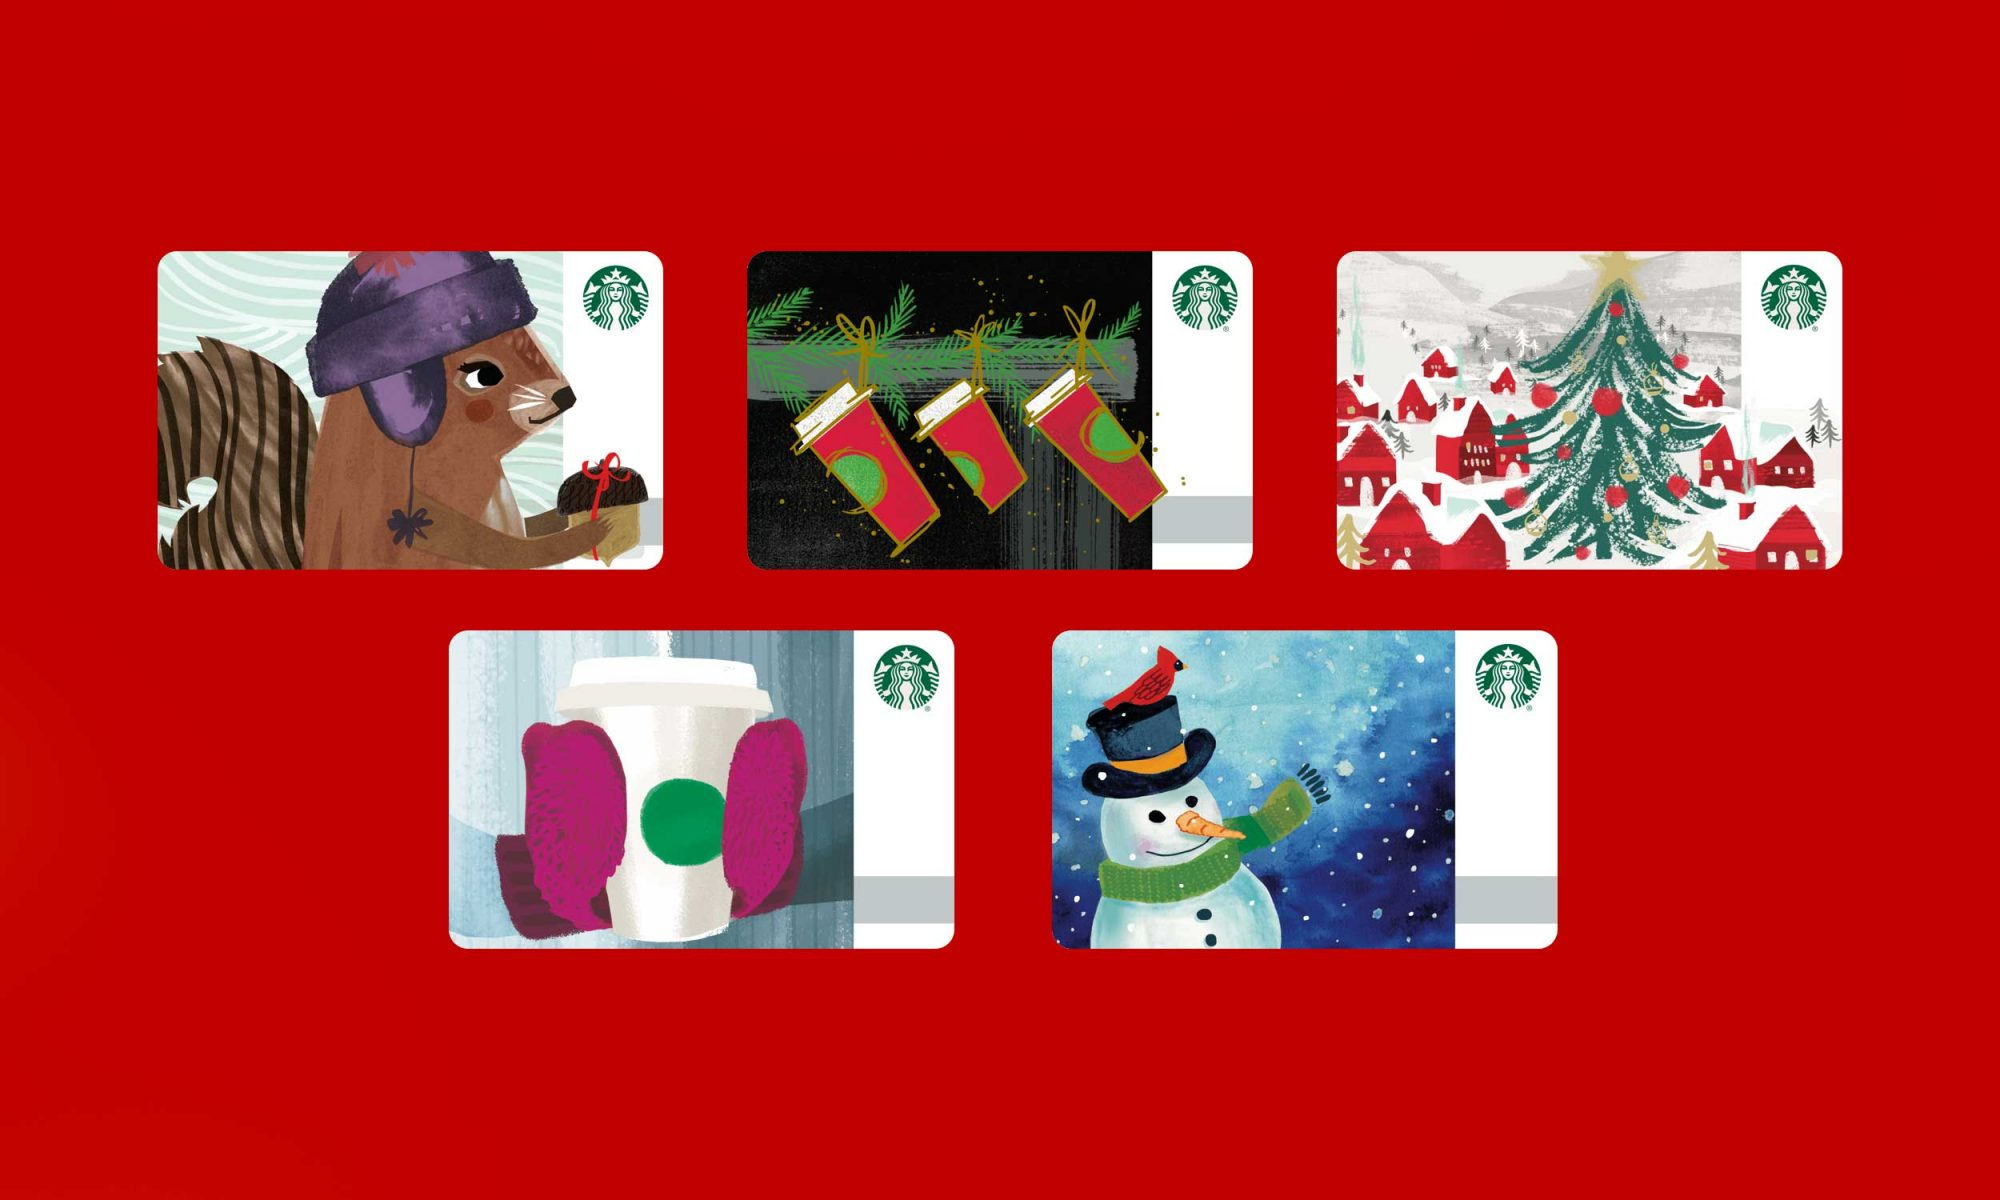 EC: How to Make the Most of That Starbucks Gift Card You Didn't Really Want